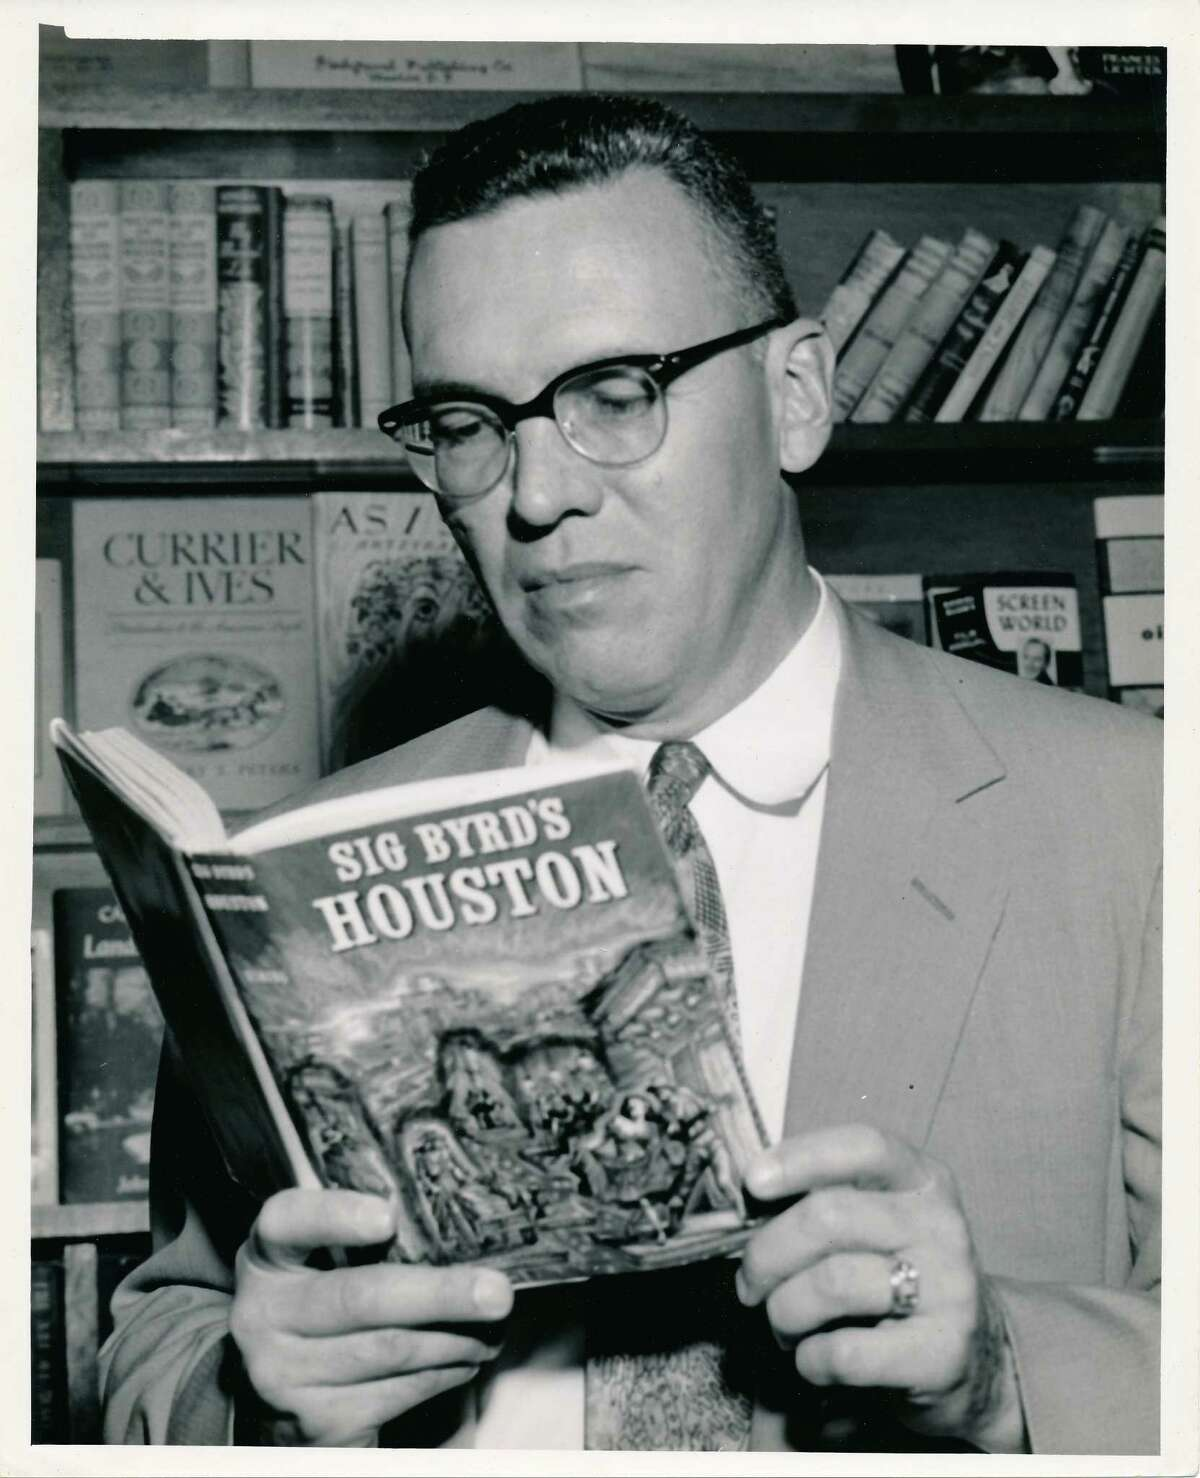 """Sigman Byrd, writer-columnist for Houston Chronicle, Post and Press. Here, Byrd looks over a copy of his book """"Sig Byrd's Houston"""" in the mid-1950s."""